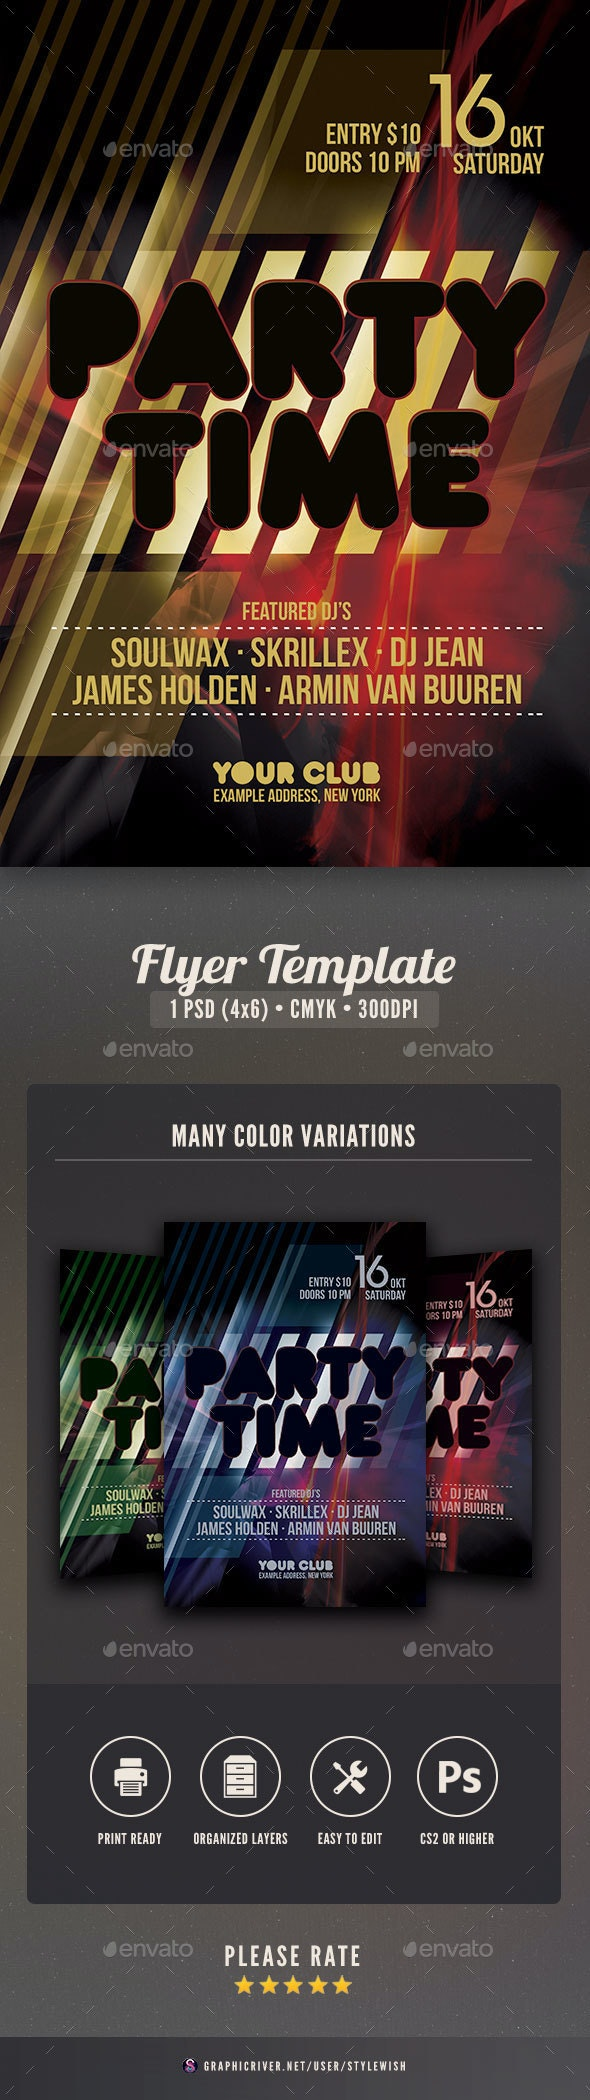 Party Time Flyer - Clubs & Parties Events